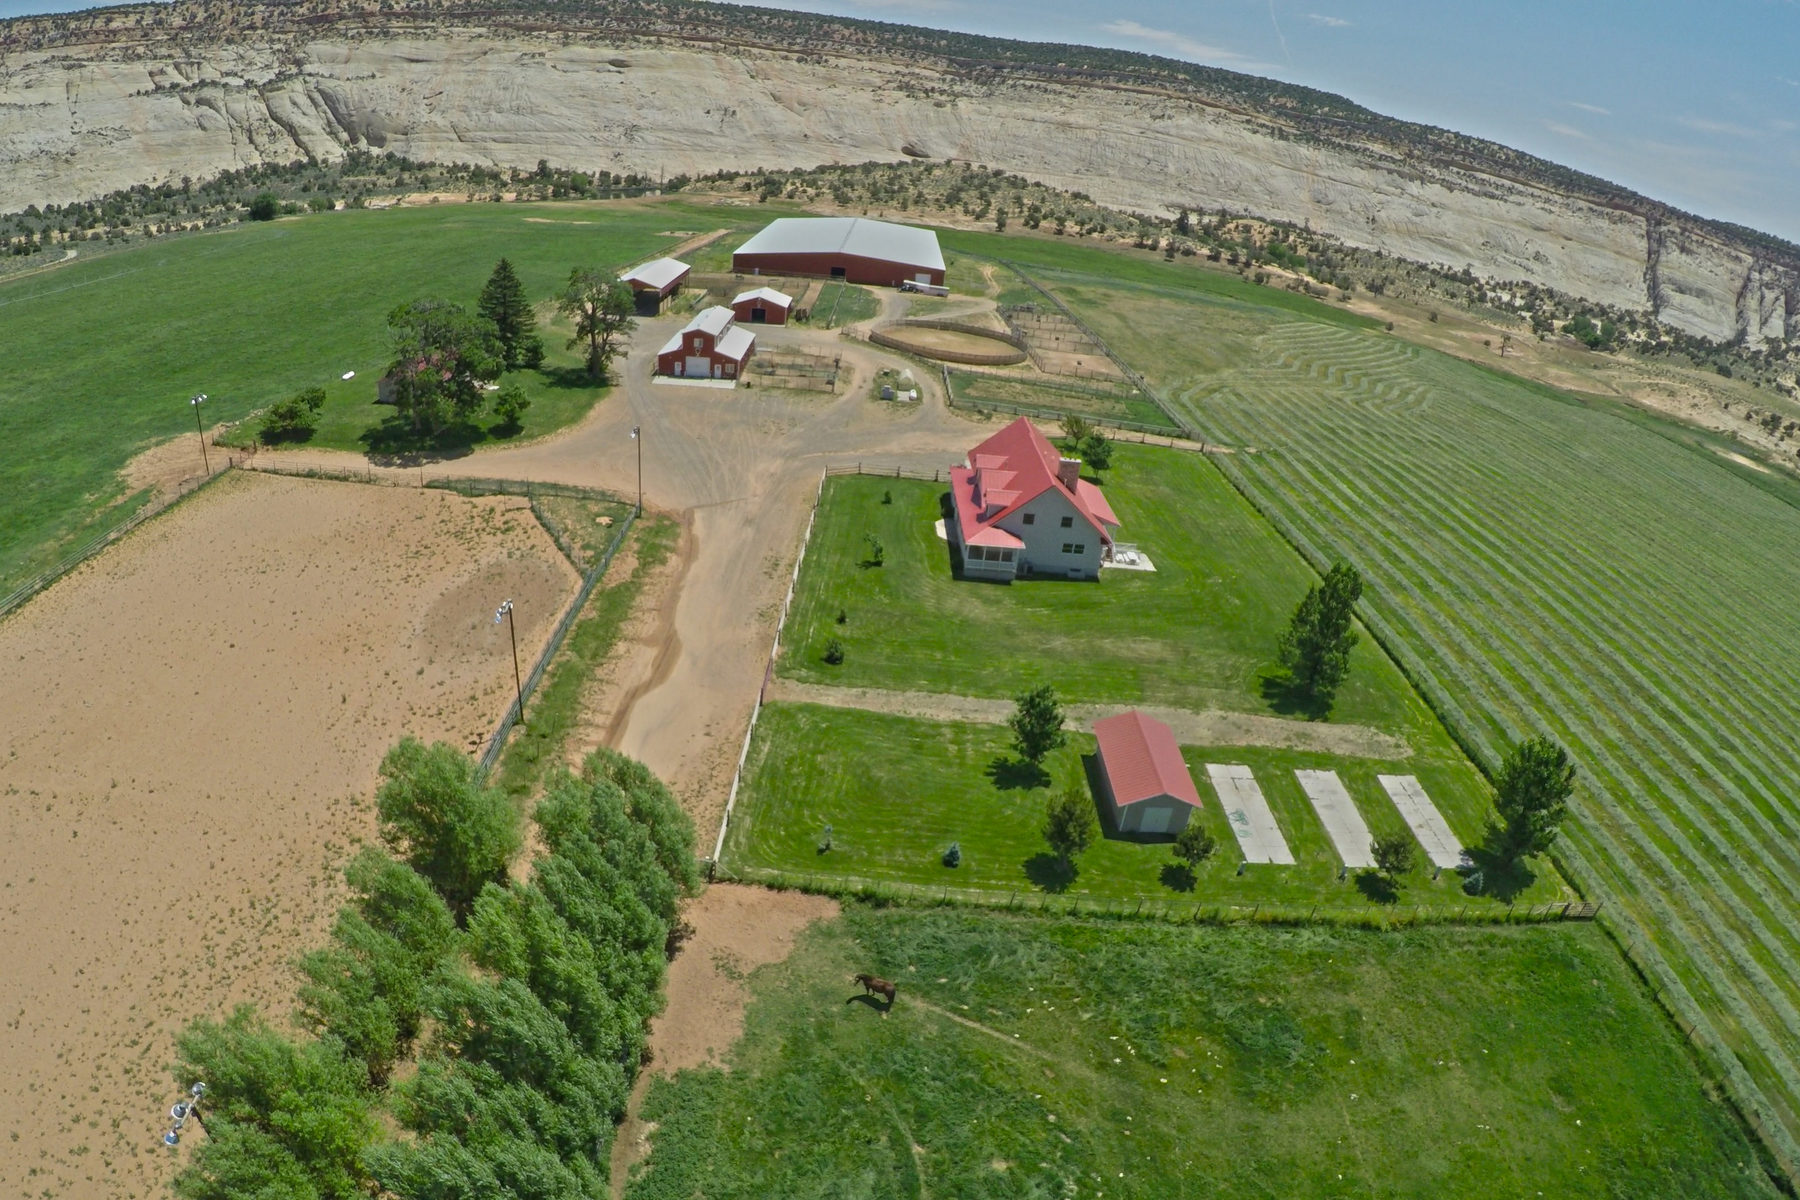 Fazenda / Rancho / Plantação para Venda às An Intensely Private & Deeply Inspirational One of a Kind Ranch - Land Holding 2405 Lower Boulder Rd Boulder, Utah, 84716 Estados Unidos